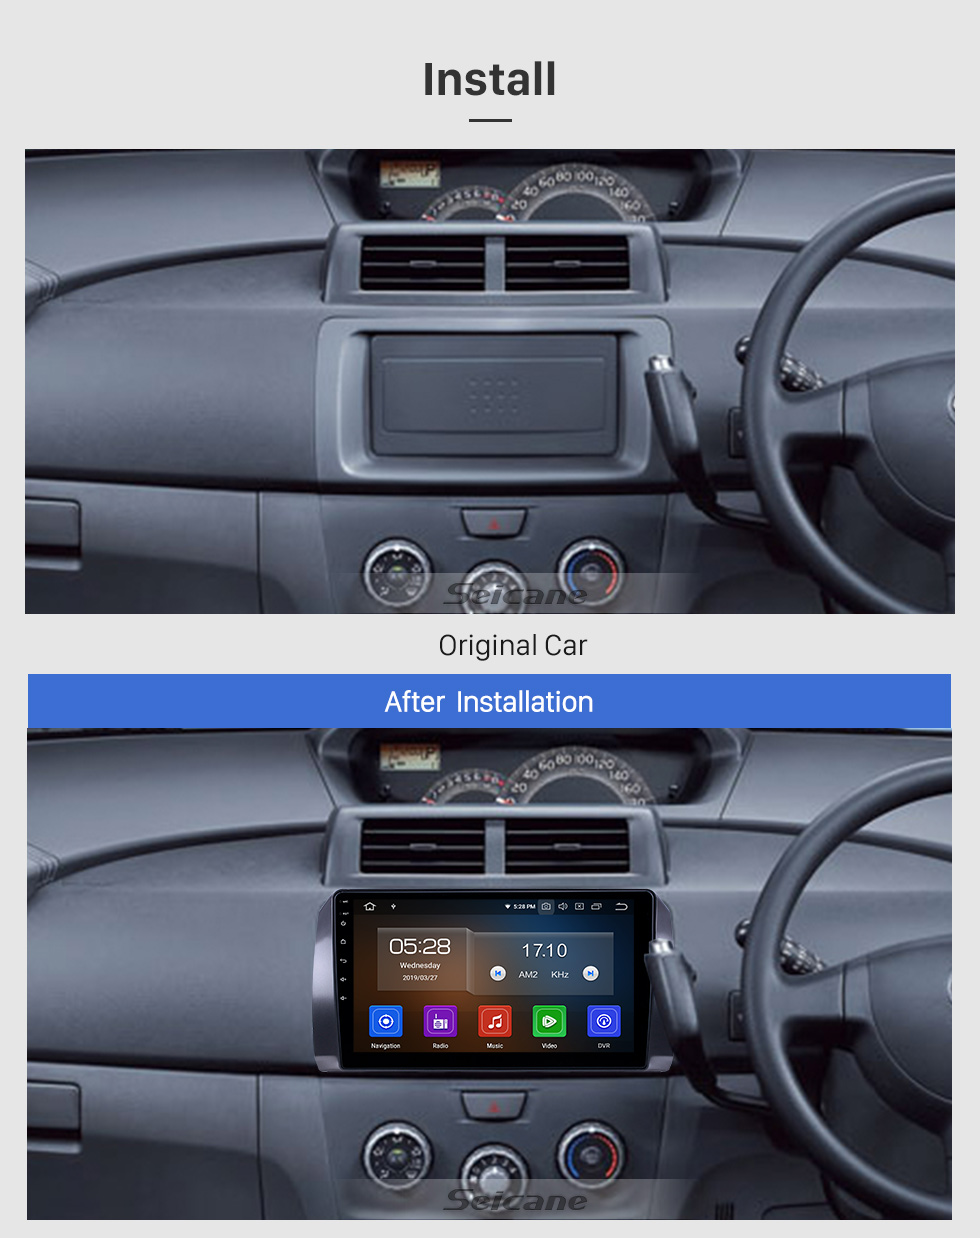 Seicane 10.1 inch Android 9.0 Radio for 2006 Toyota B6/2008 Subaru DEX/2005 Daihatsu WO Bluetooth Touchscreen GPS Navigation Carplay support SWC